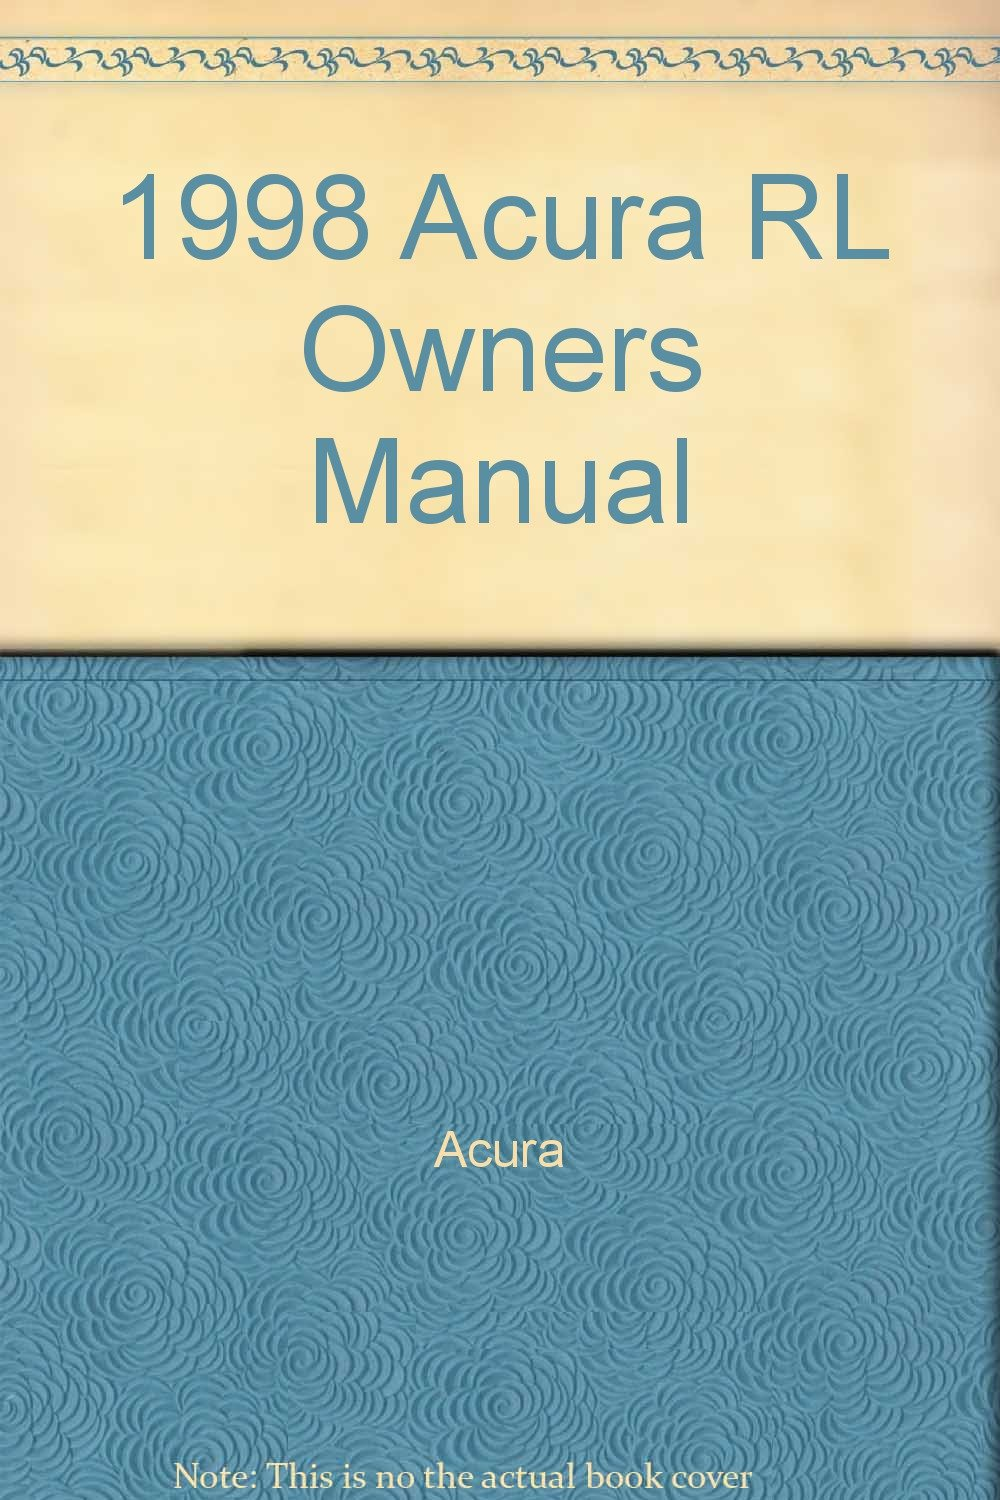 1998 Acura RL Owners Manual Guide Book ( Water Damage): Acura: Amazon.com:  Books